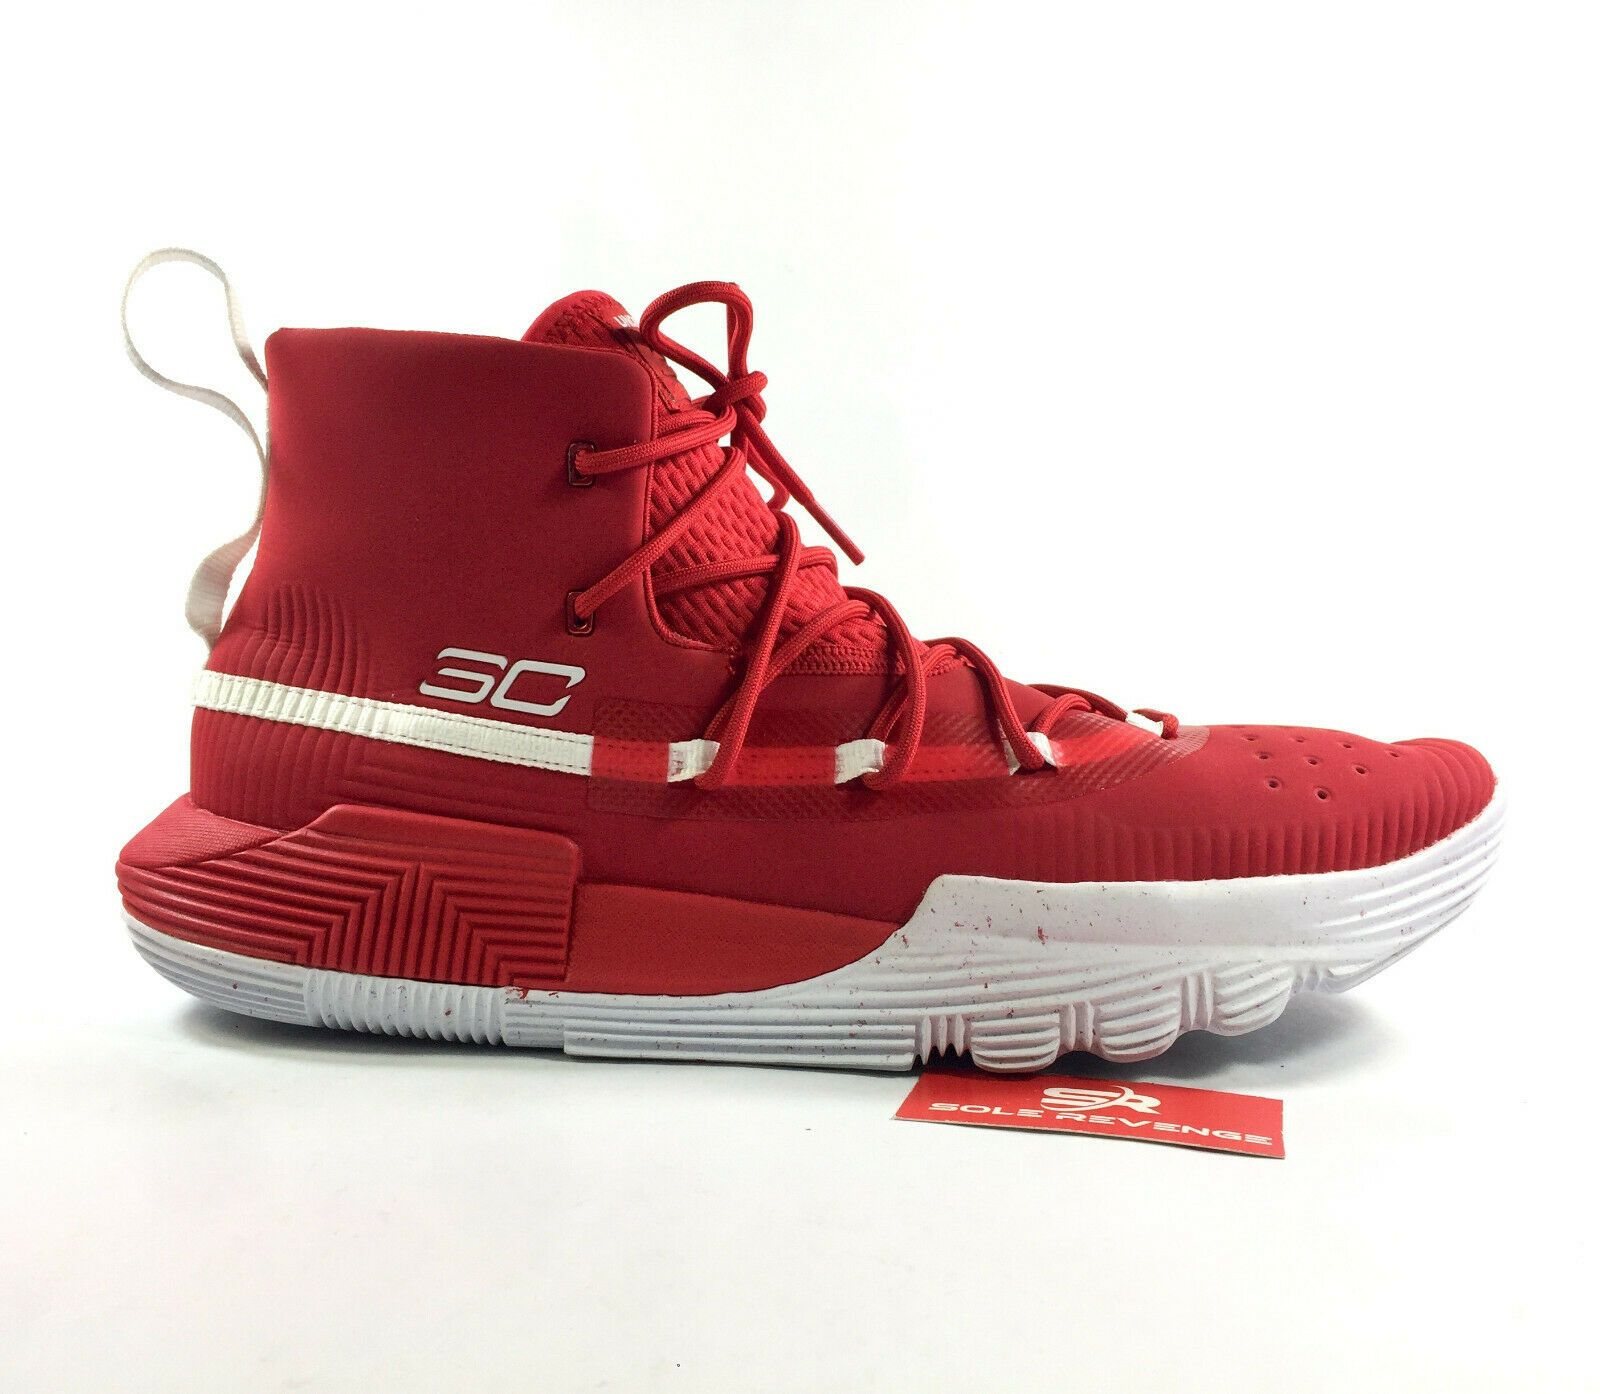 9653fe72897e New UNDER ARMOUR SC 3ZERO II MENS 20613600 Stephen Curry Shoes Red White c1  -